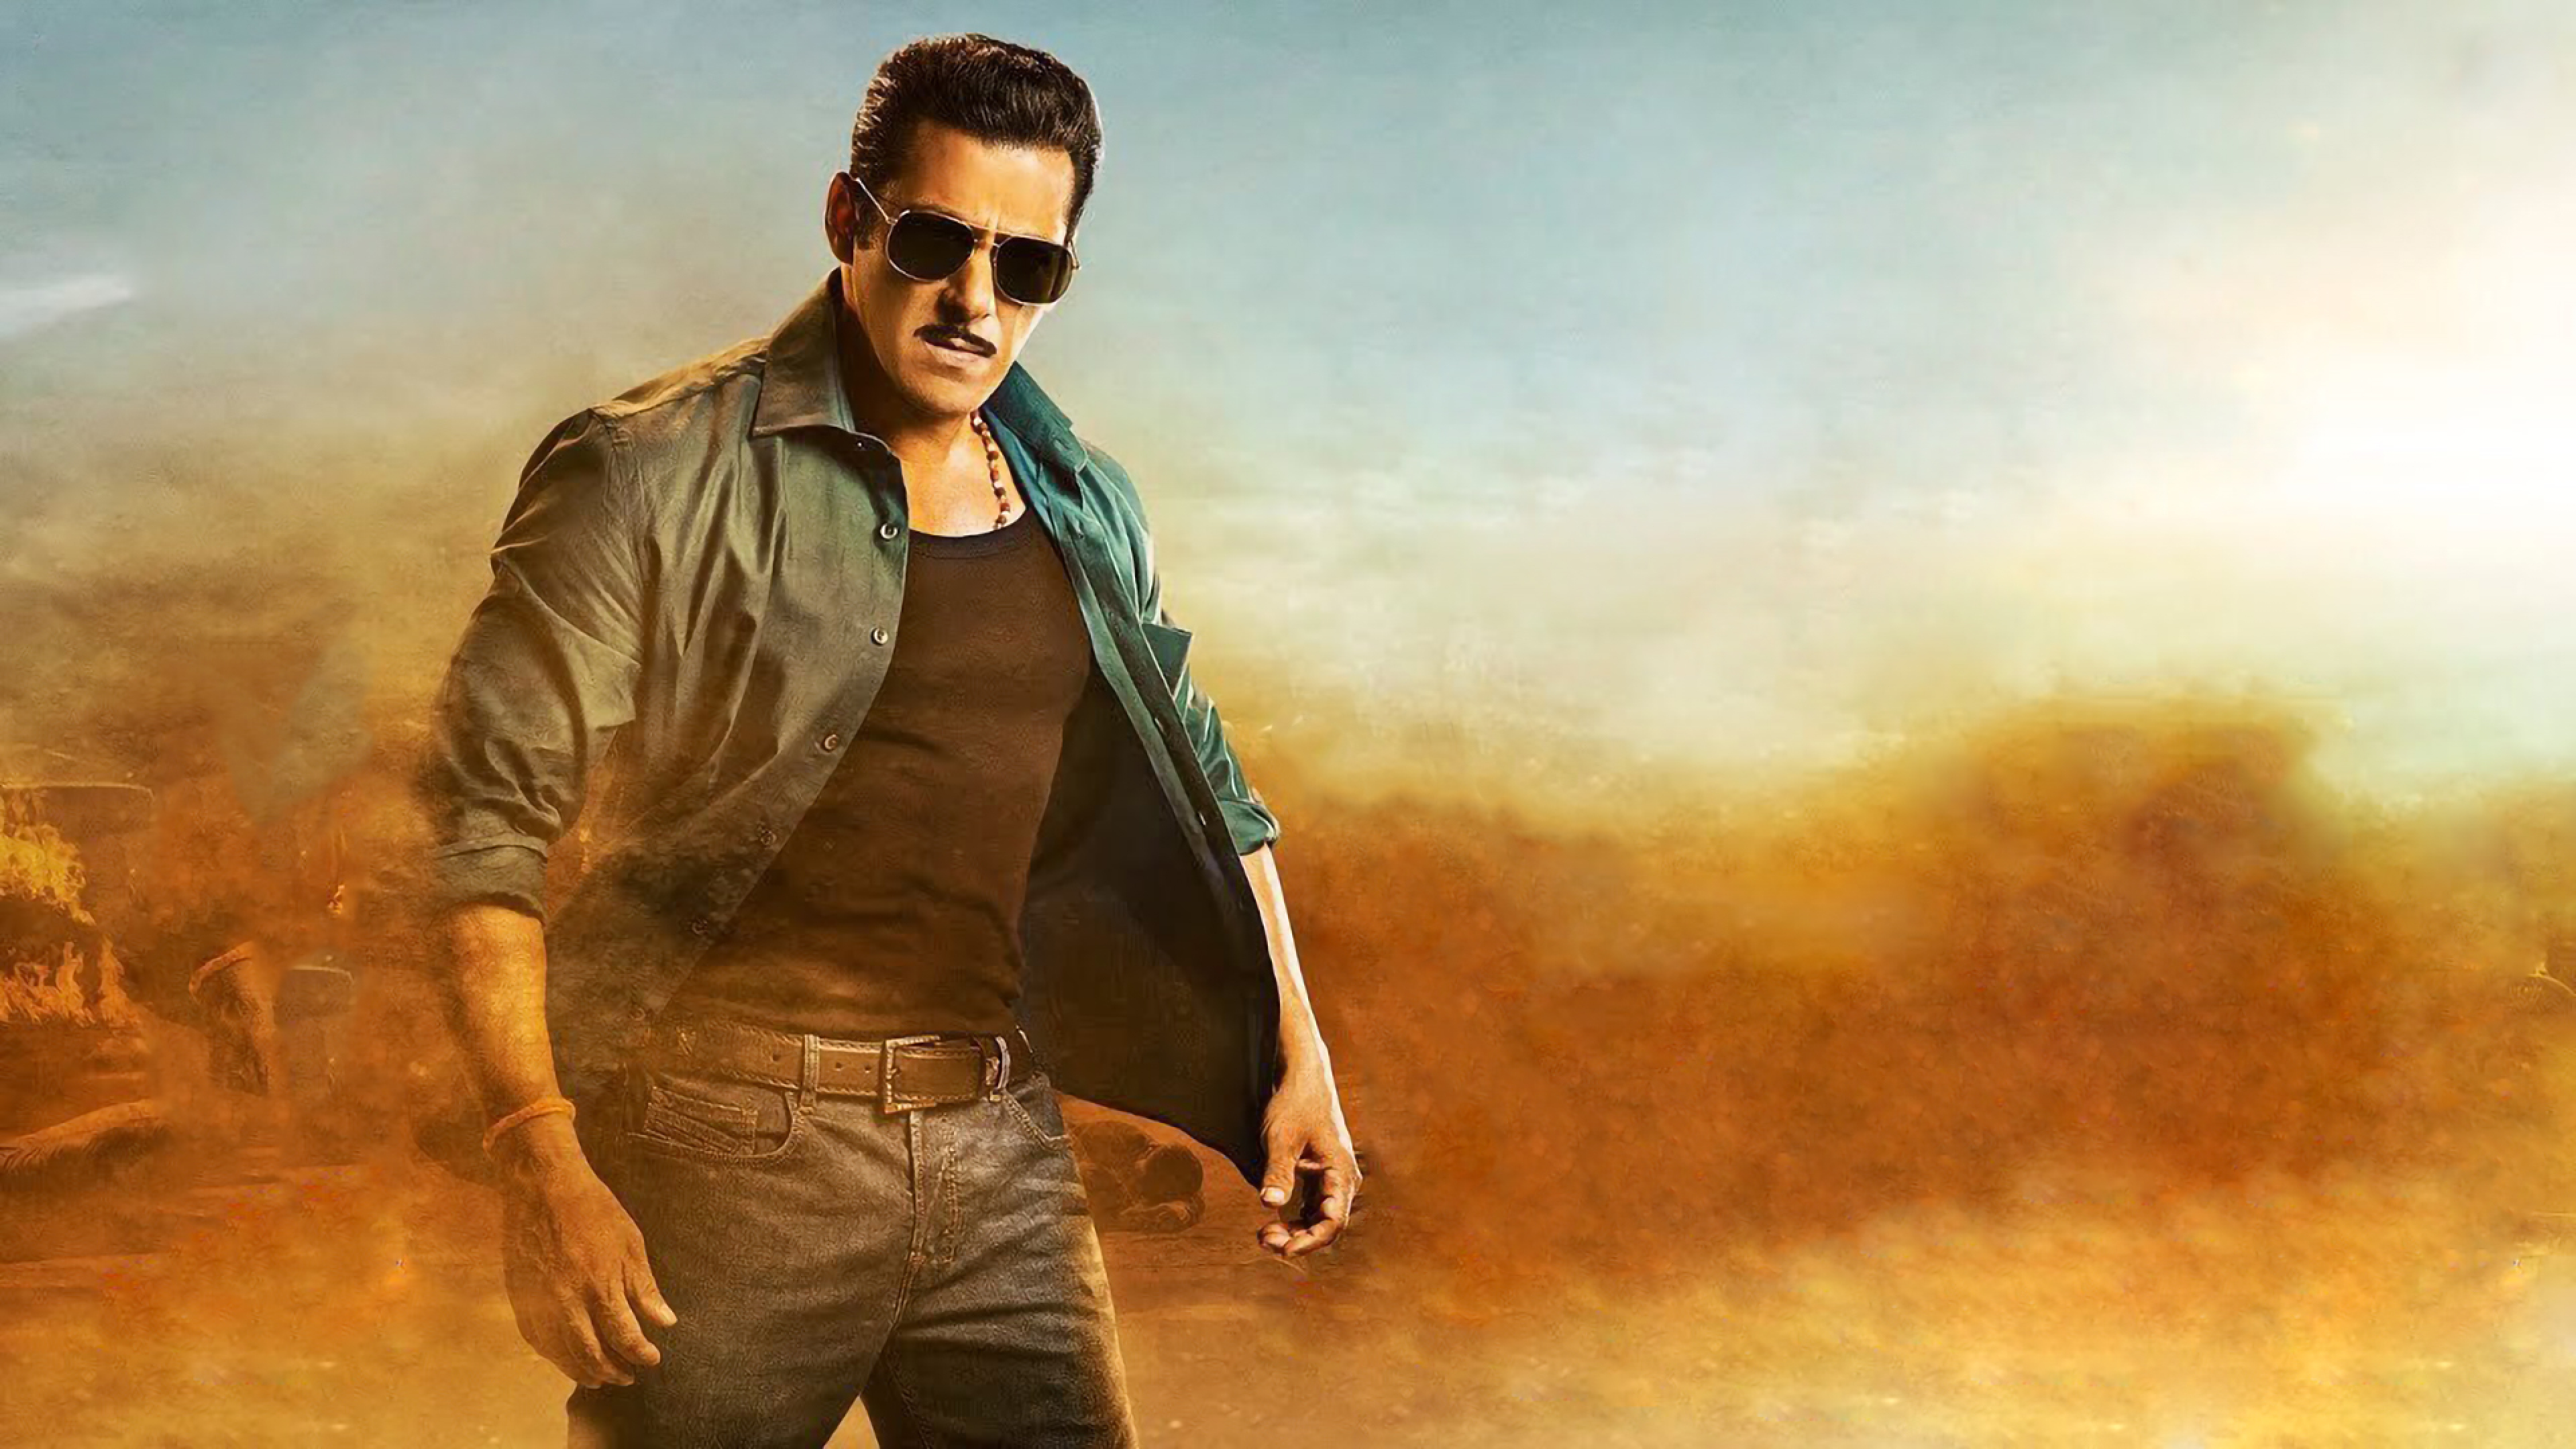 3840x2160 Dabangg 3 4k Wallpaper Hd Movies 4k Wallpapers